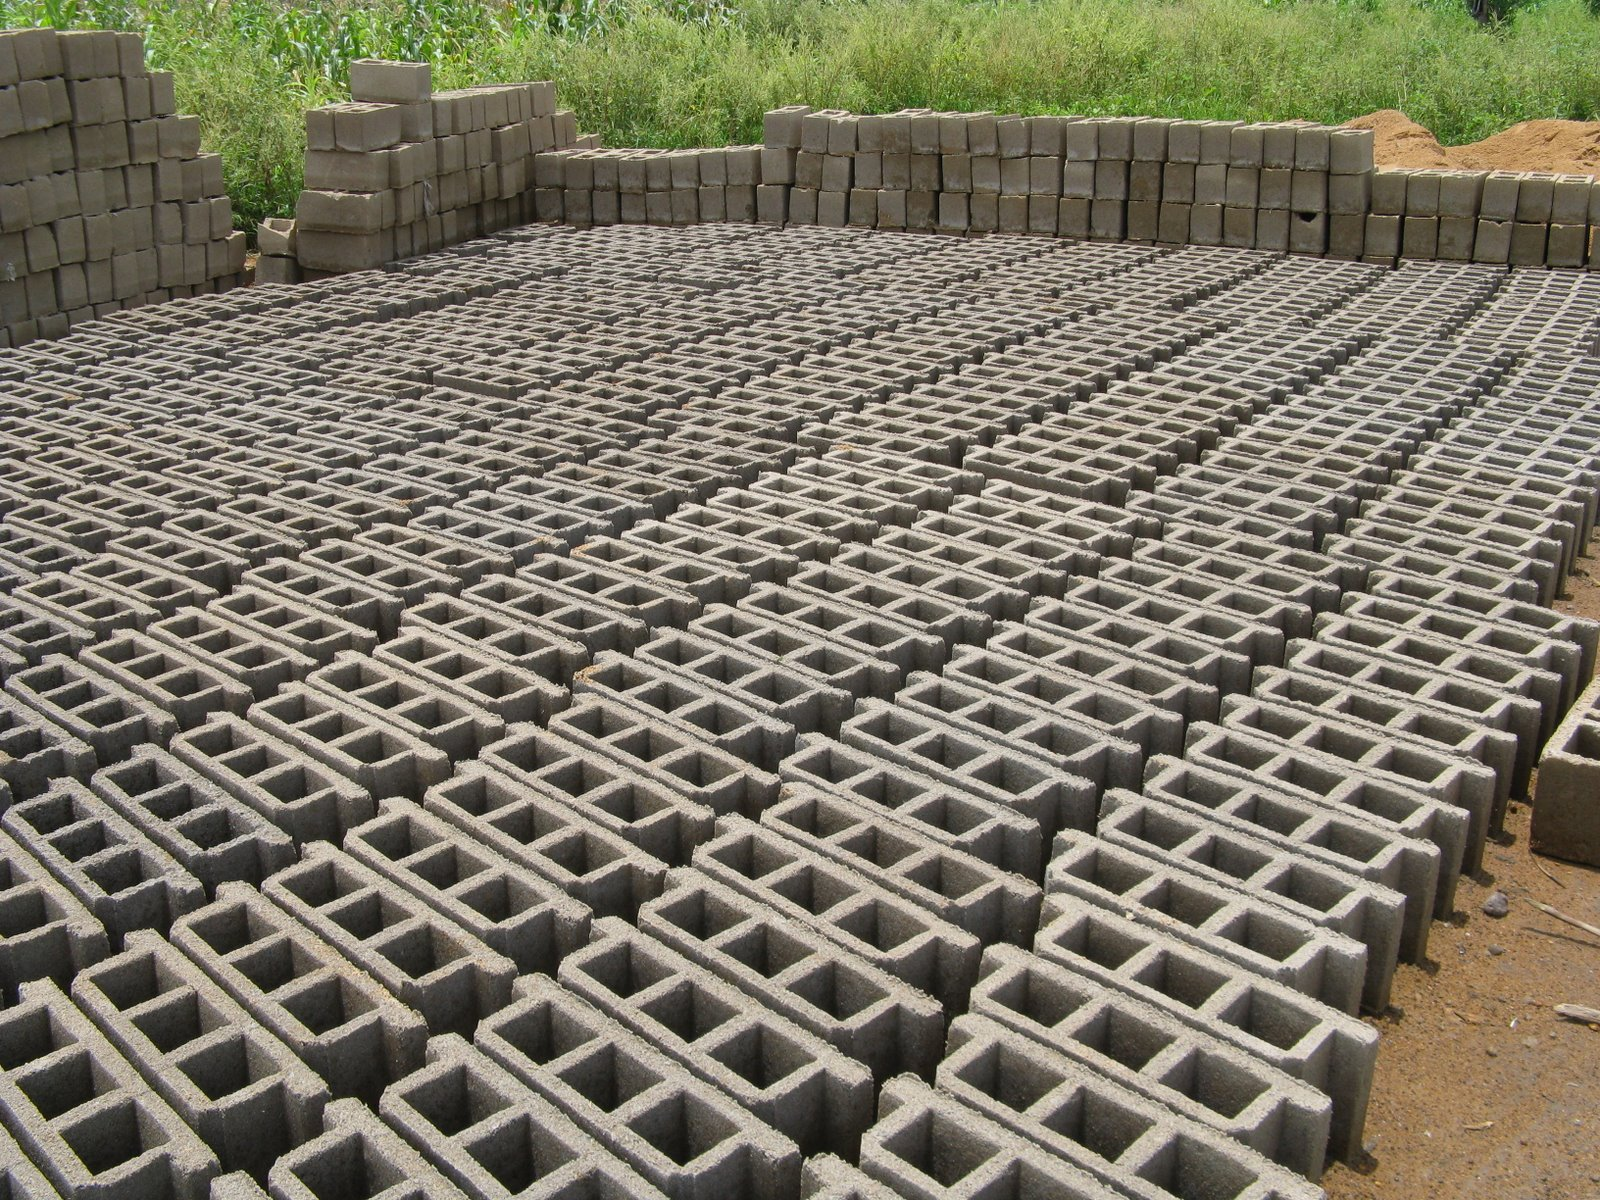 Making concrete blocks by hand